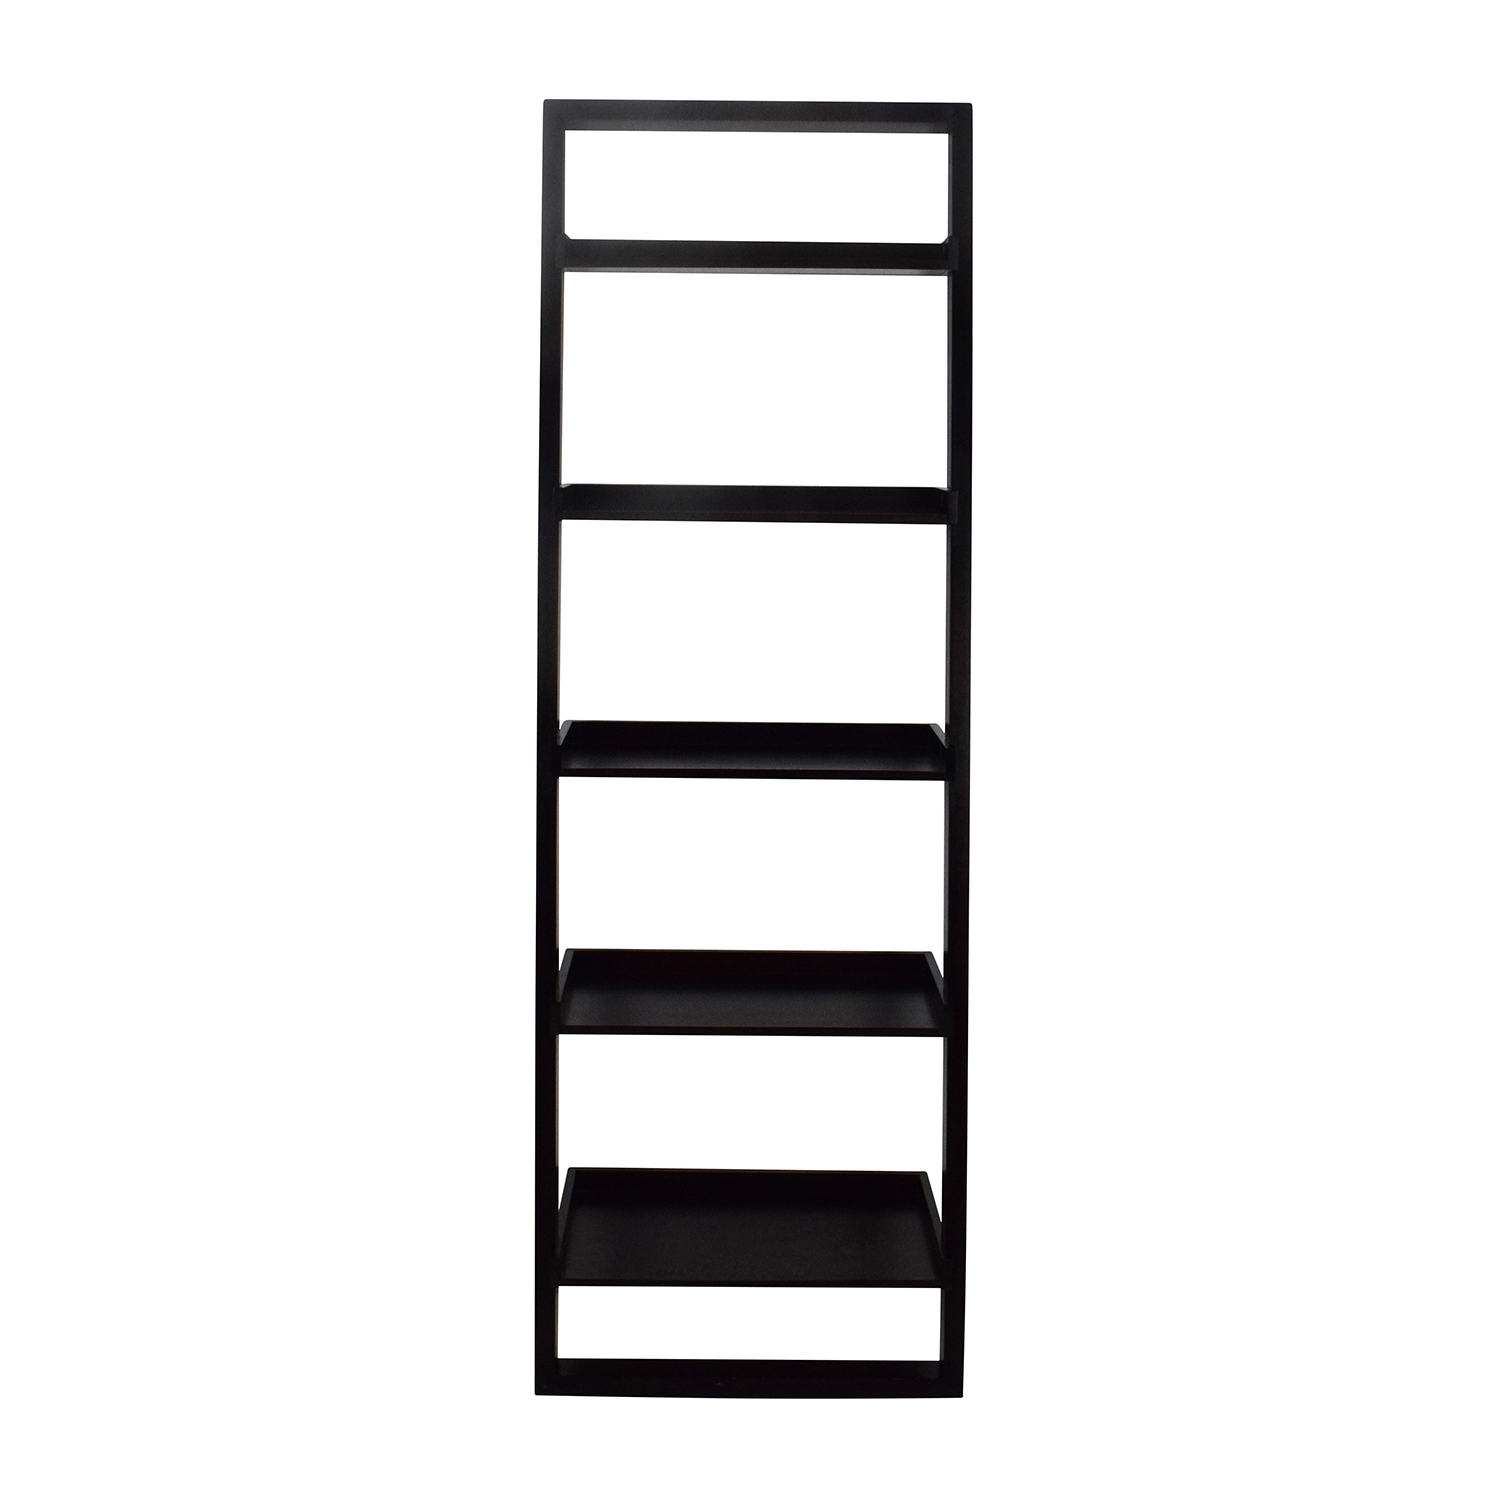 [%49% Off – Crate And Barrel Crate & Barrel Sloane Leaning Bookcase Pertaining To Recent Crate And Barrel Bookcases|Crate And Barrel Bookcases With Regard To Well Known 49% Off – Crate And Barrel Crate & Barrel Sloane Leaning Bookcase|2017 Crate And Barrel Bookcases For 49% Off – Crate And Barrel Crate & Barrel Sloane Leaning Bookcase|Popular 49% Off – Crate And Barrel Crate & Barrel Sloane Leaning Bookcase For Crate And Barrel Bookcases%] (View 2 of 15)